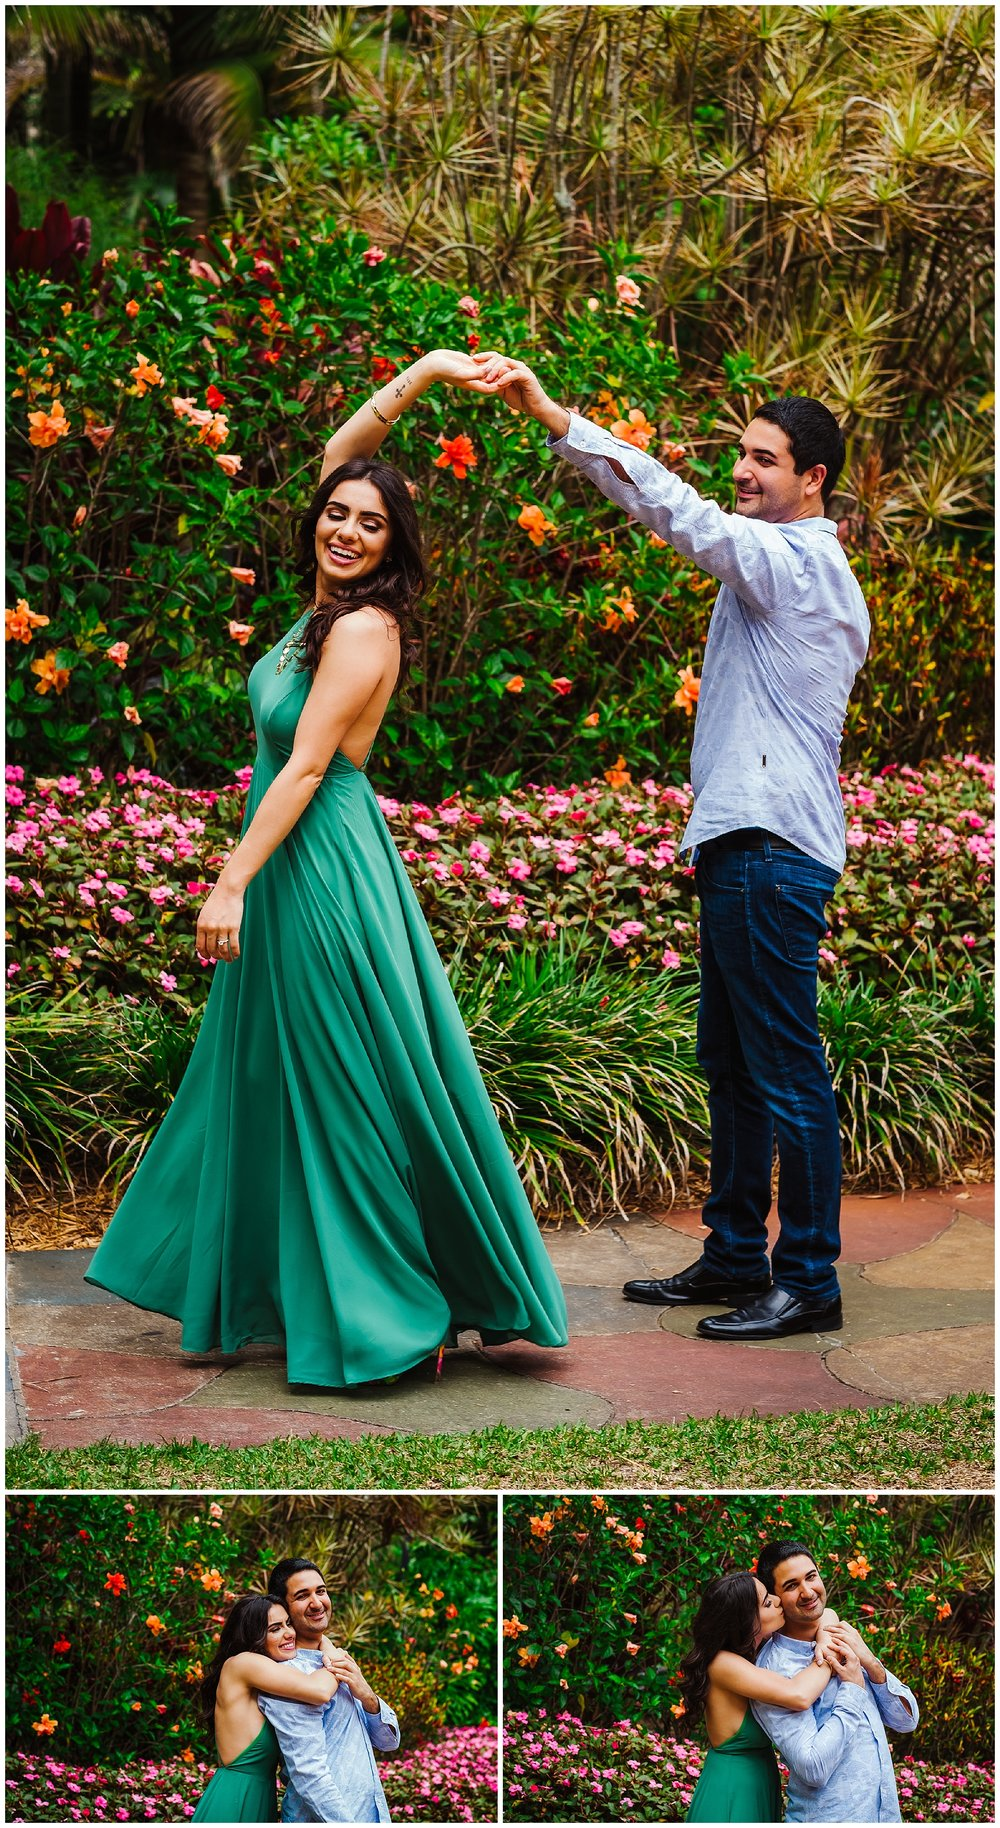 sunken-gardens-engagement-session-photos-teal-flamingos_0011.jpg